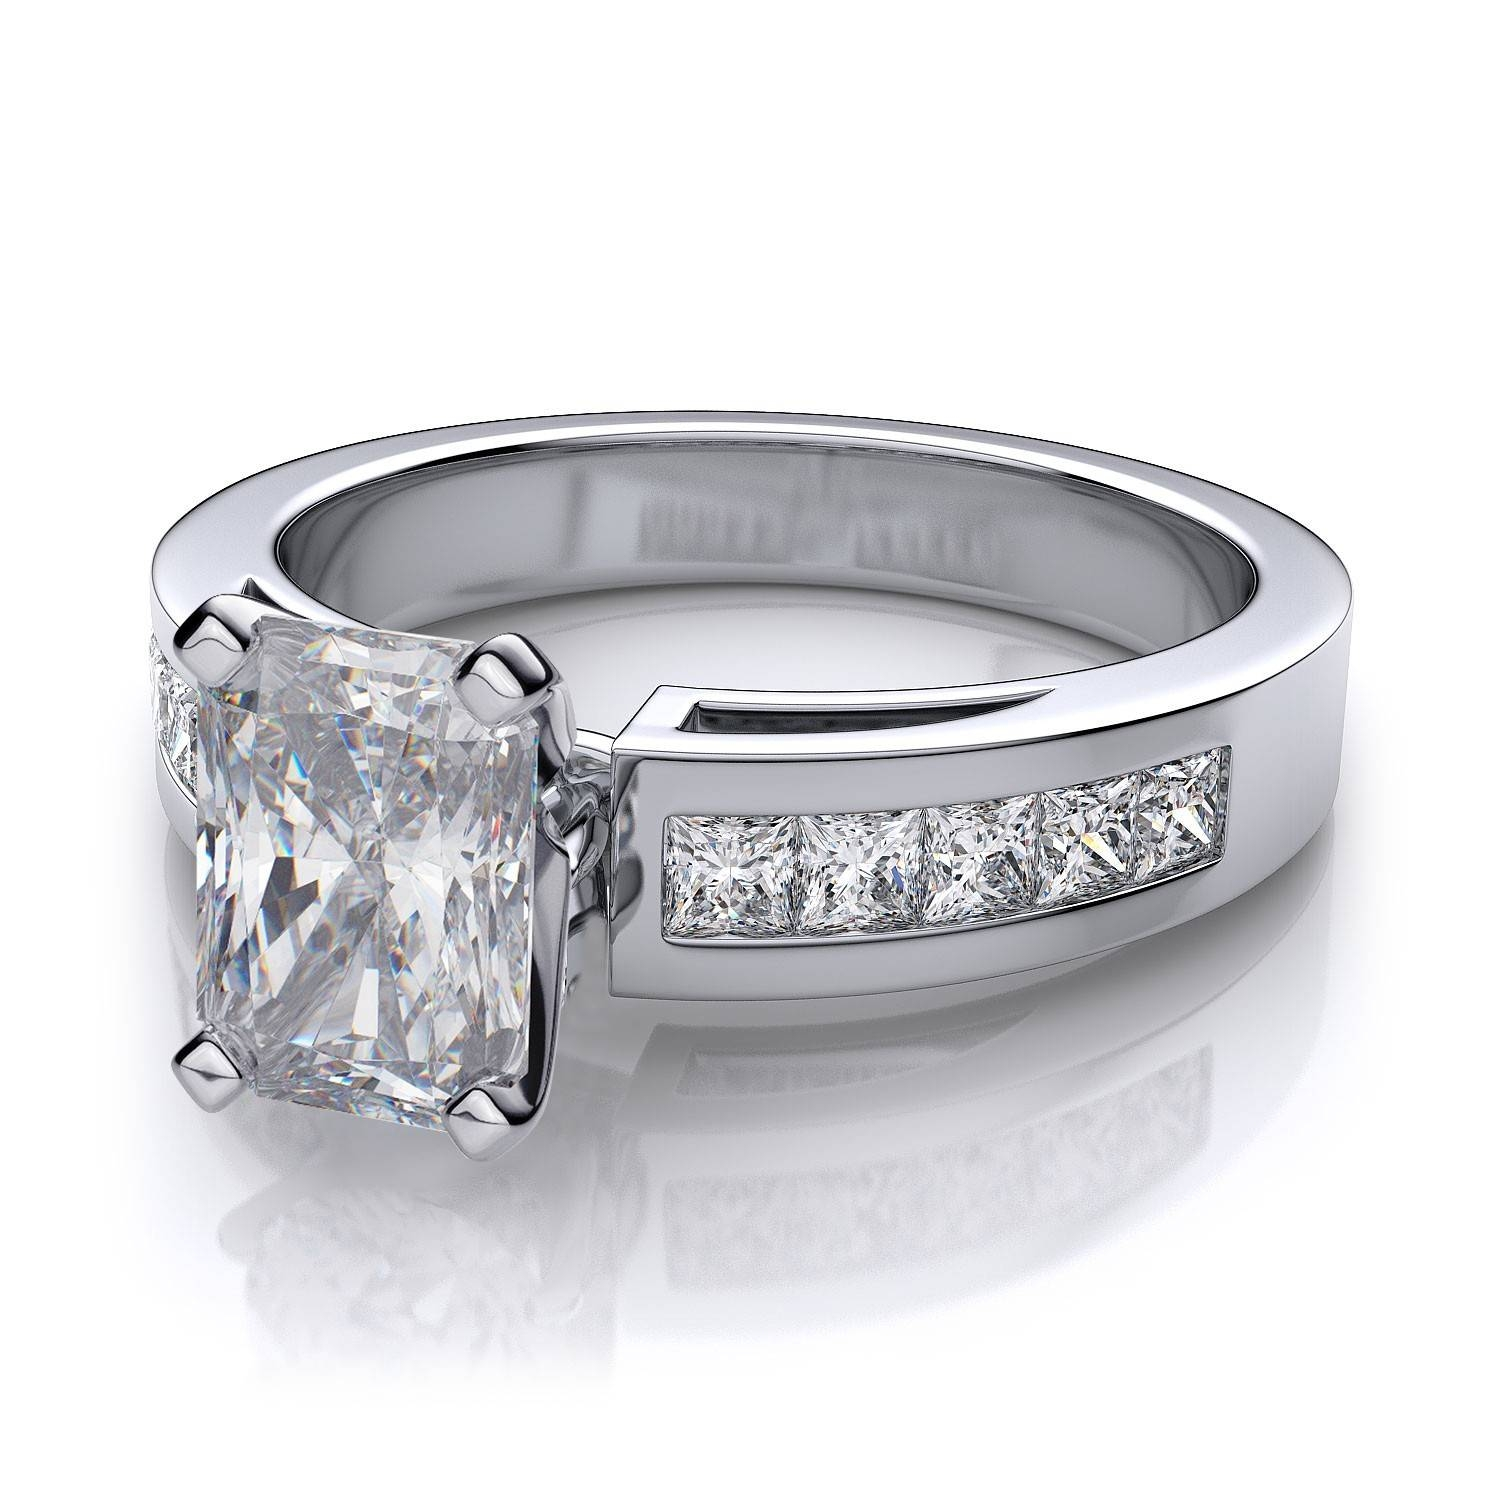 1/2 Ctw Cathedral Channel Set Radiant Cut Diamond Engagement Ring For Radiant Cut Engagement Ring Settings (Gallery 12 of 15)